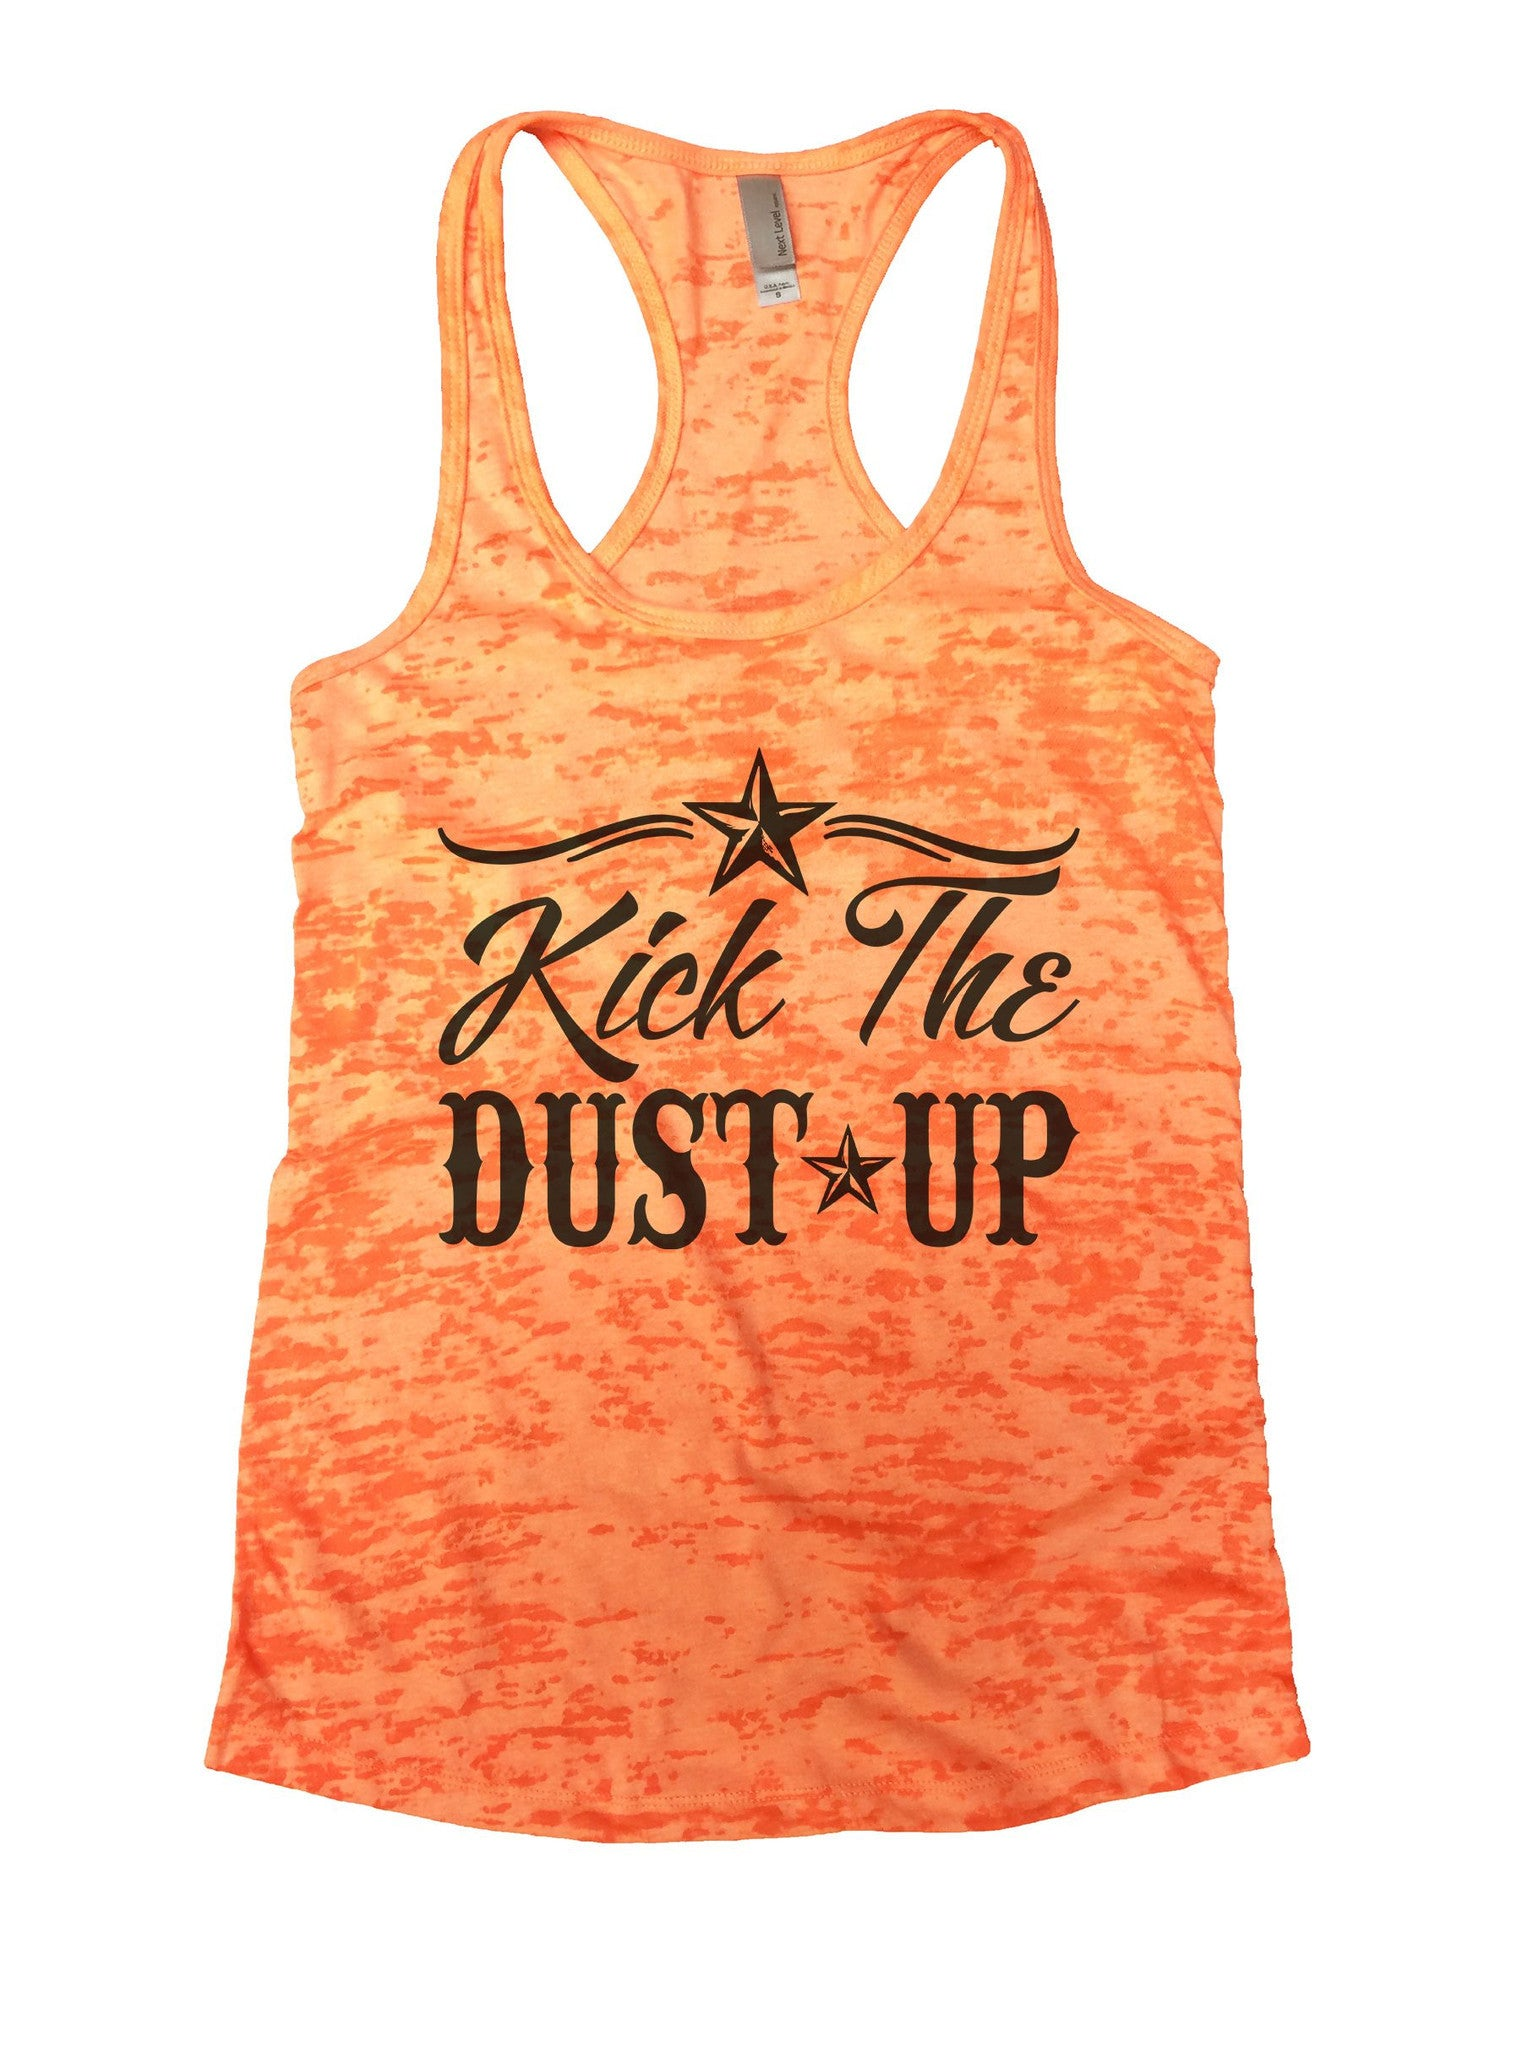 Kick The Dust Up Burnout Tank Top By BurnoutTankTops.com - 1028 - Funny Shirts Tank Tops Burnouts and Triblends  - 3